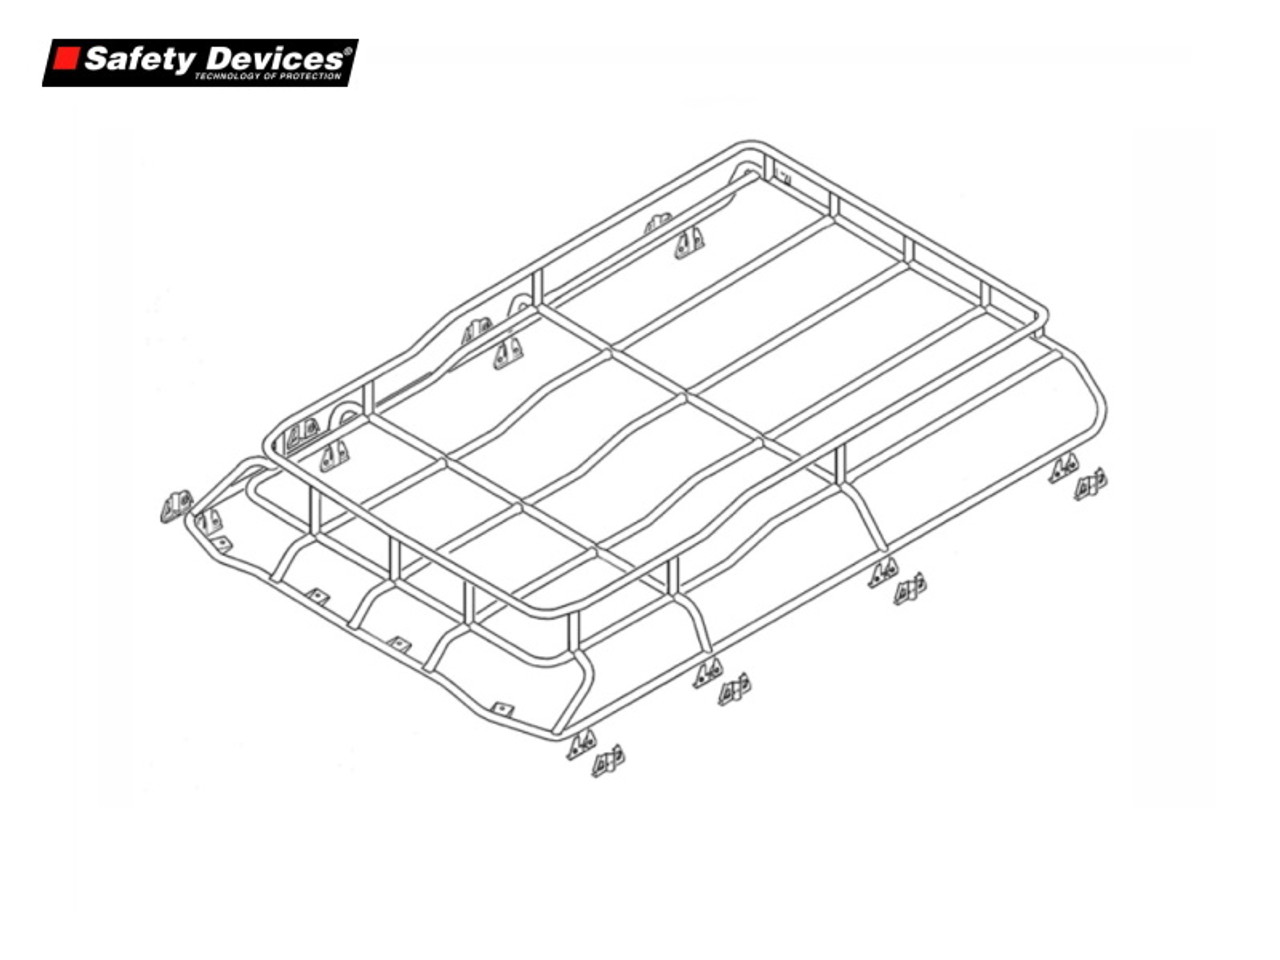 safety devices highlander roof rack for discovery 2 da4732